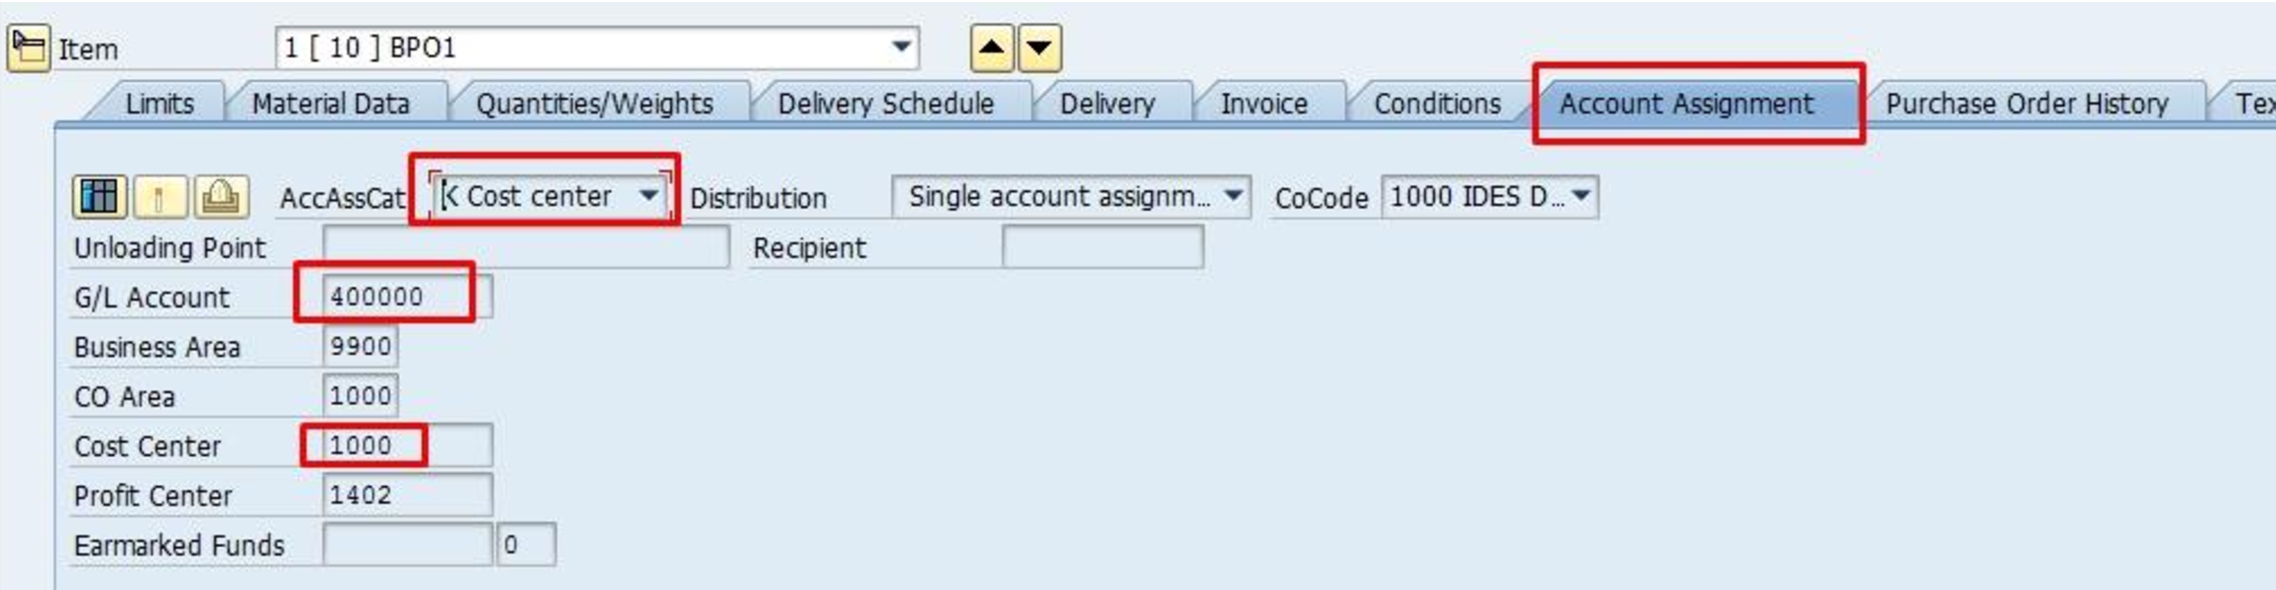 Blanket Purchase Order Account Assignment Item Details